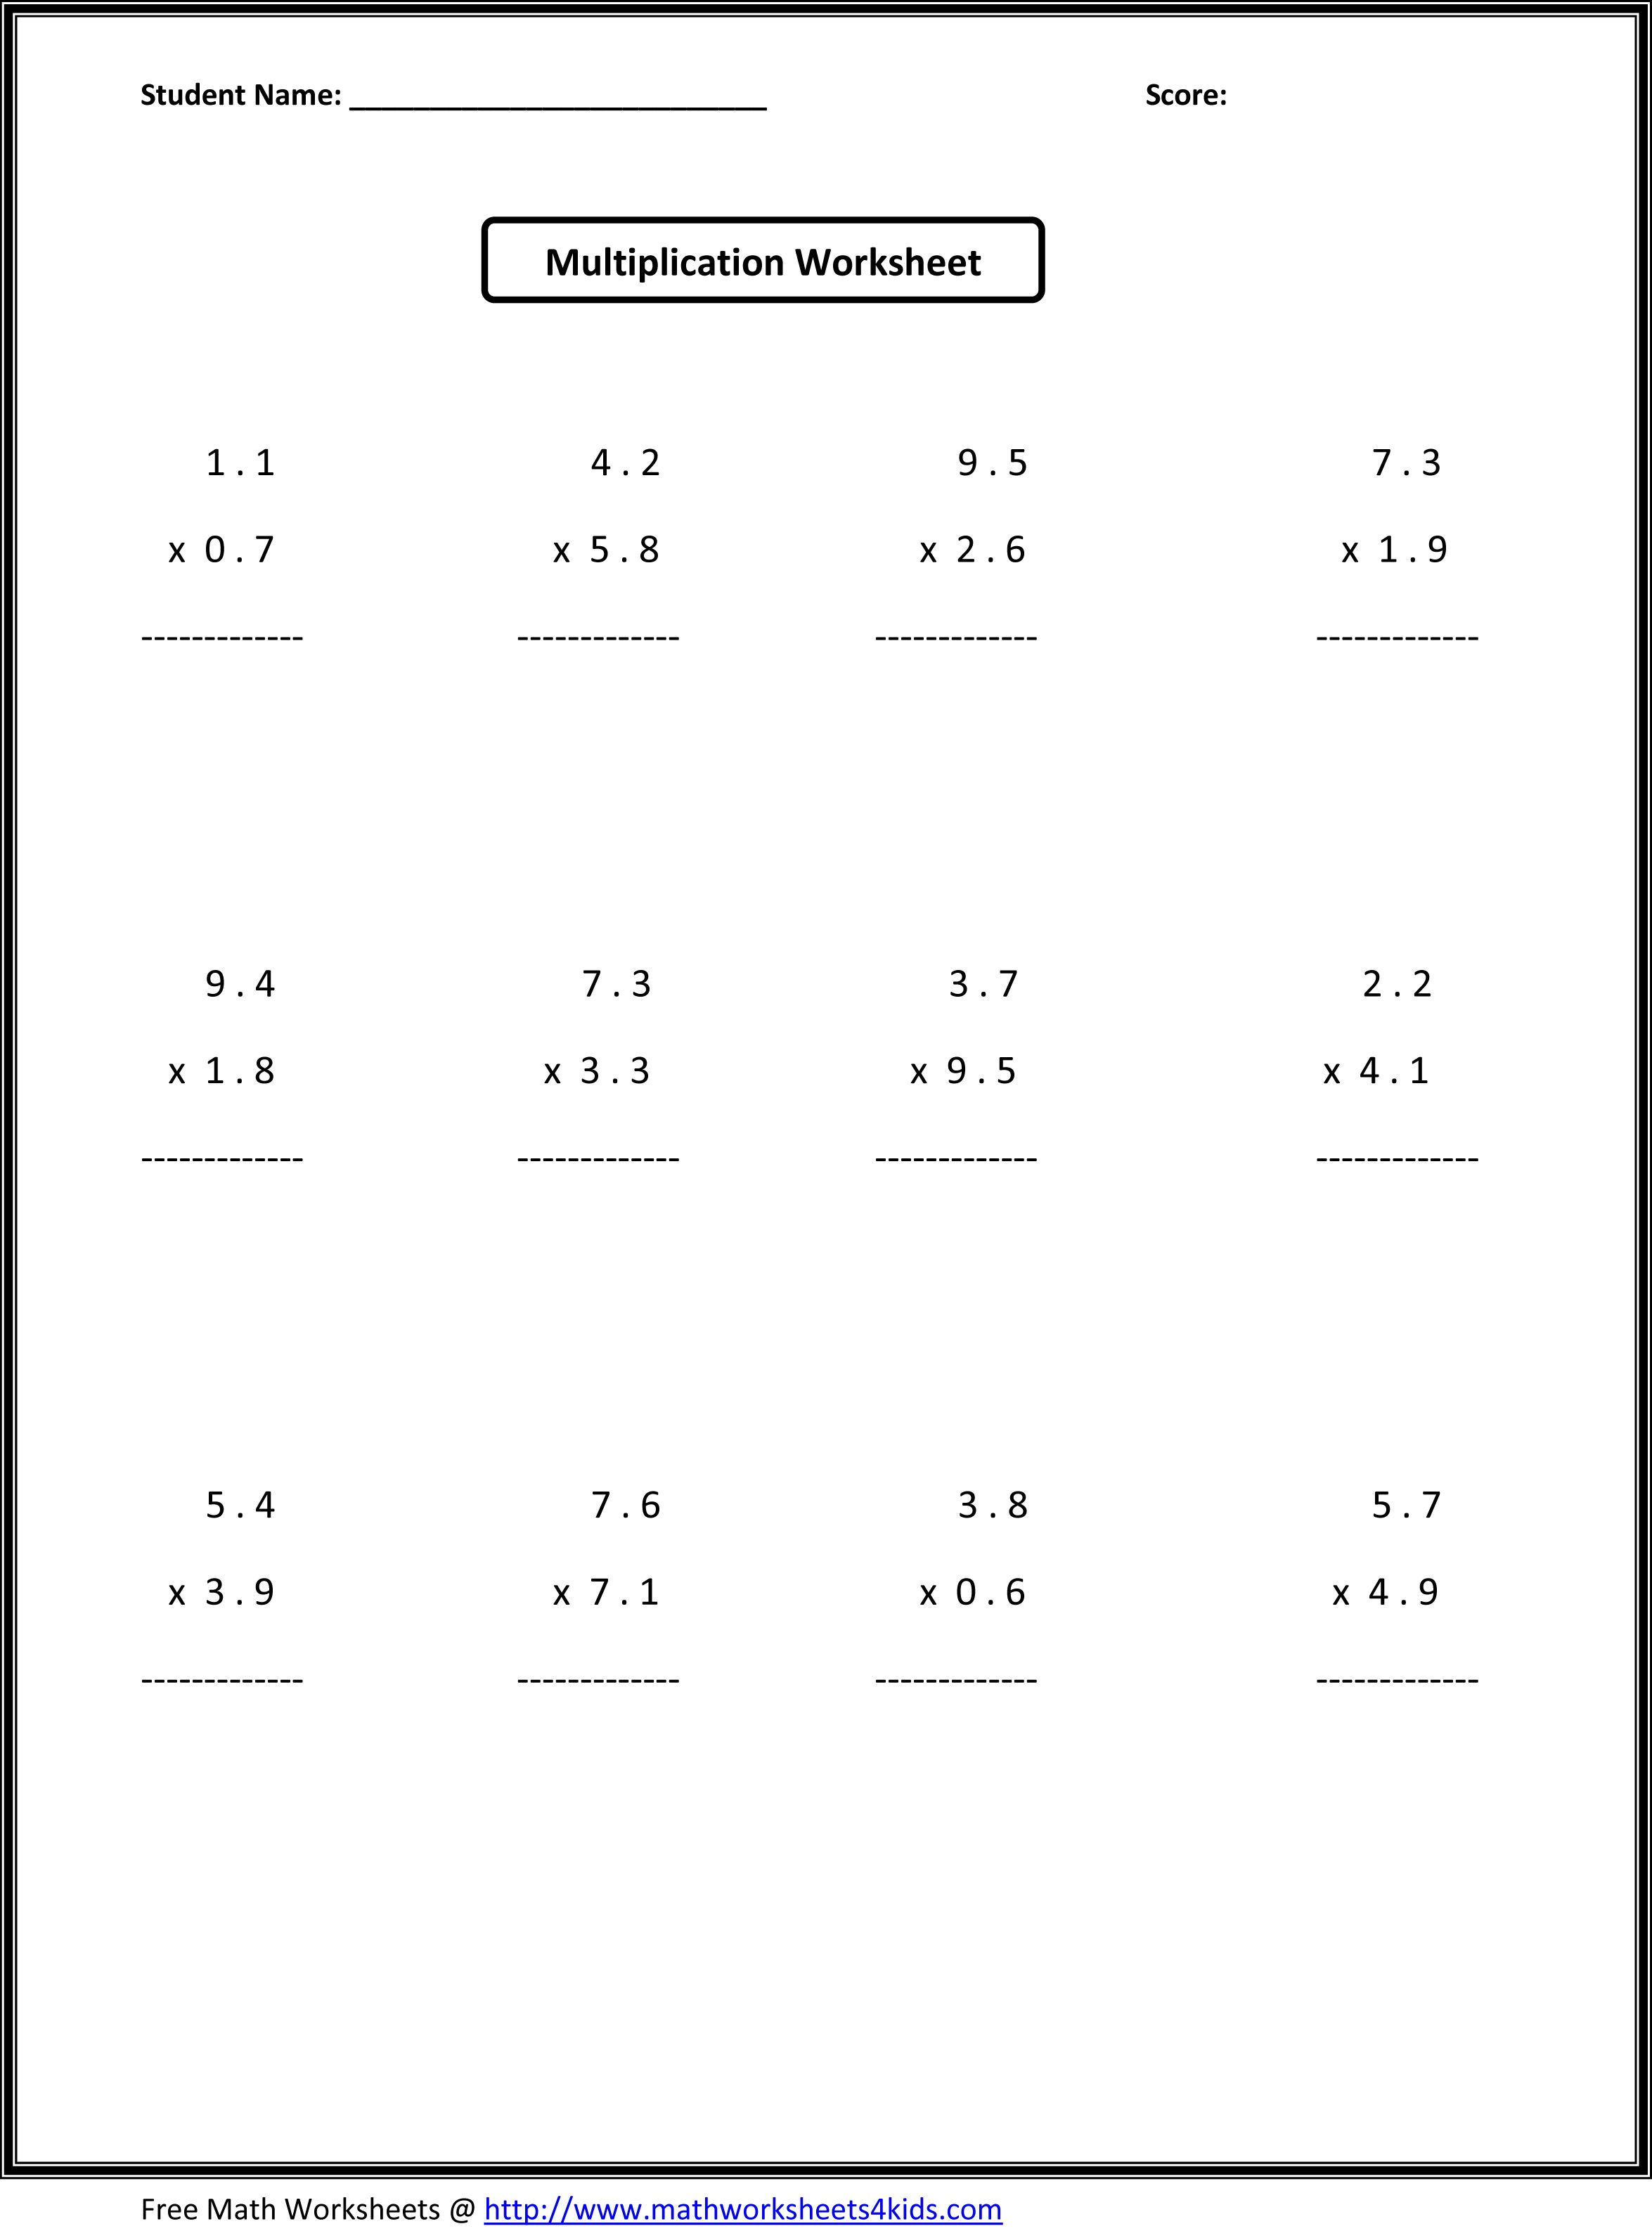 Printables Sixth Grade Math Worksheets With Answers 7th grade algebra worksheets math places sixth have ratio multiplying and dividing fractions algebraic expressions equations inequalities geomet